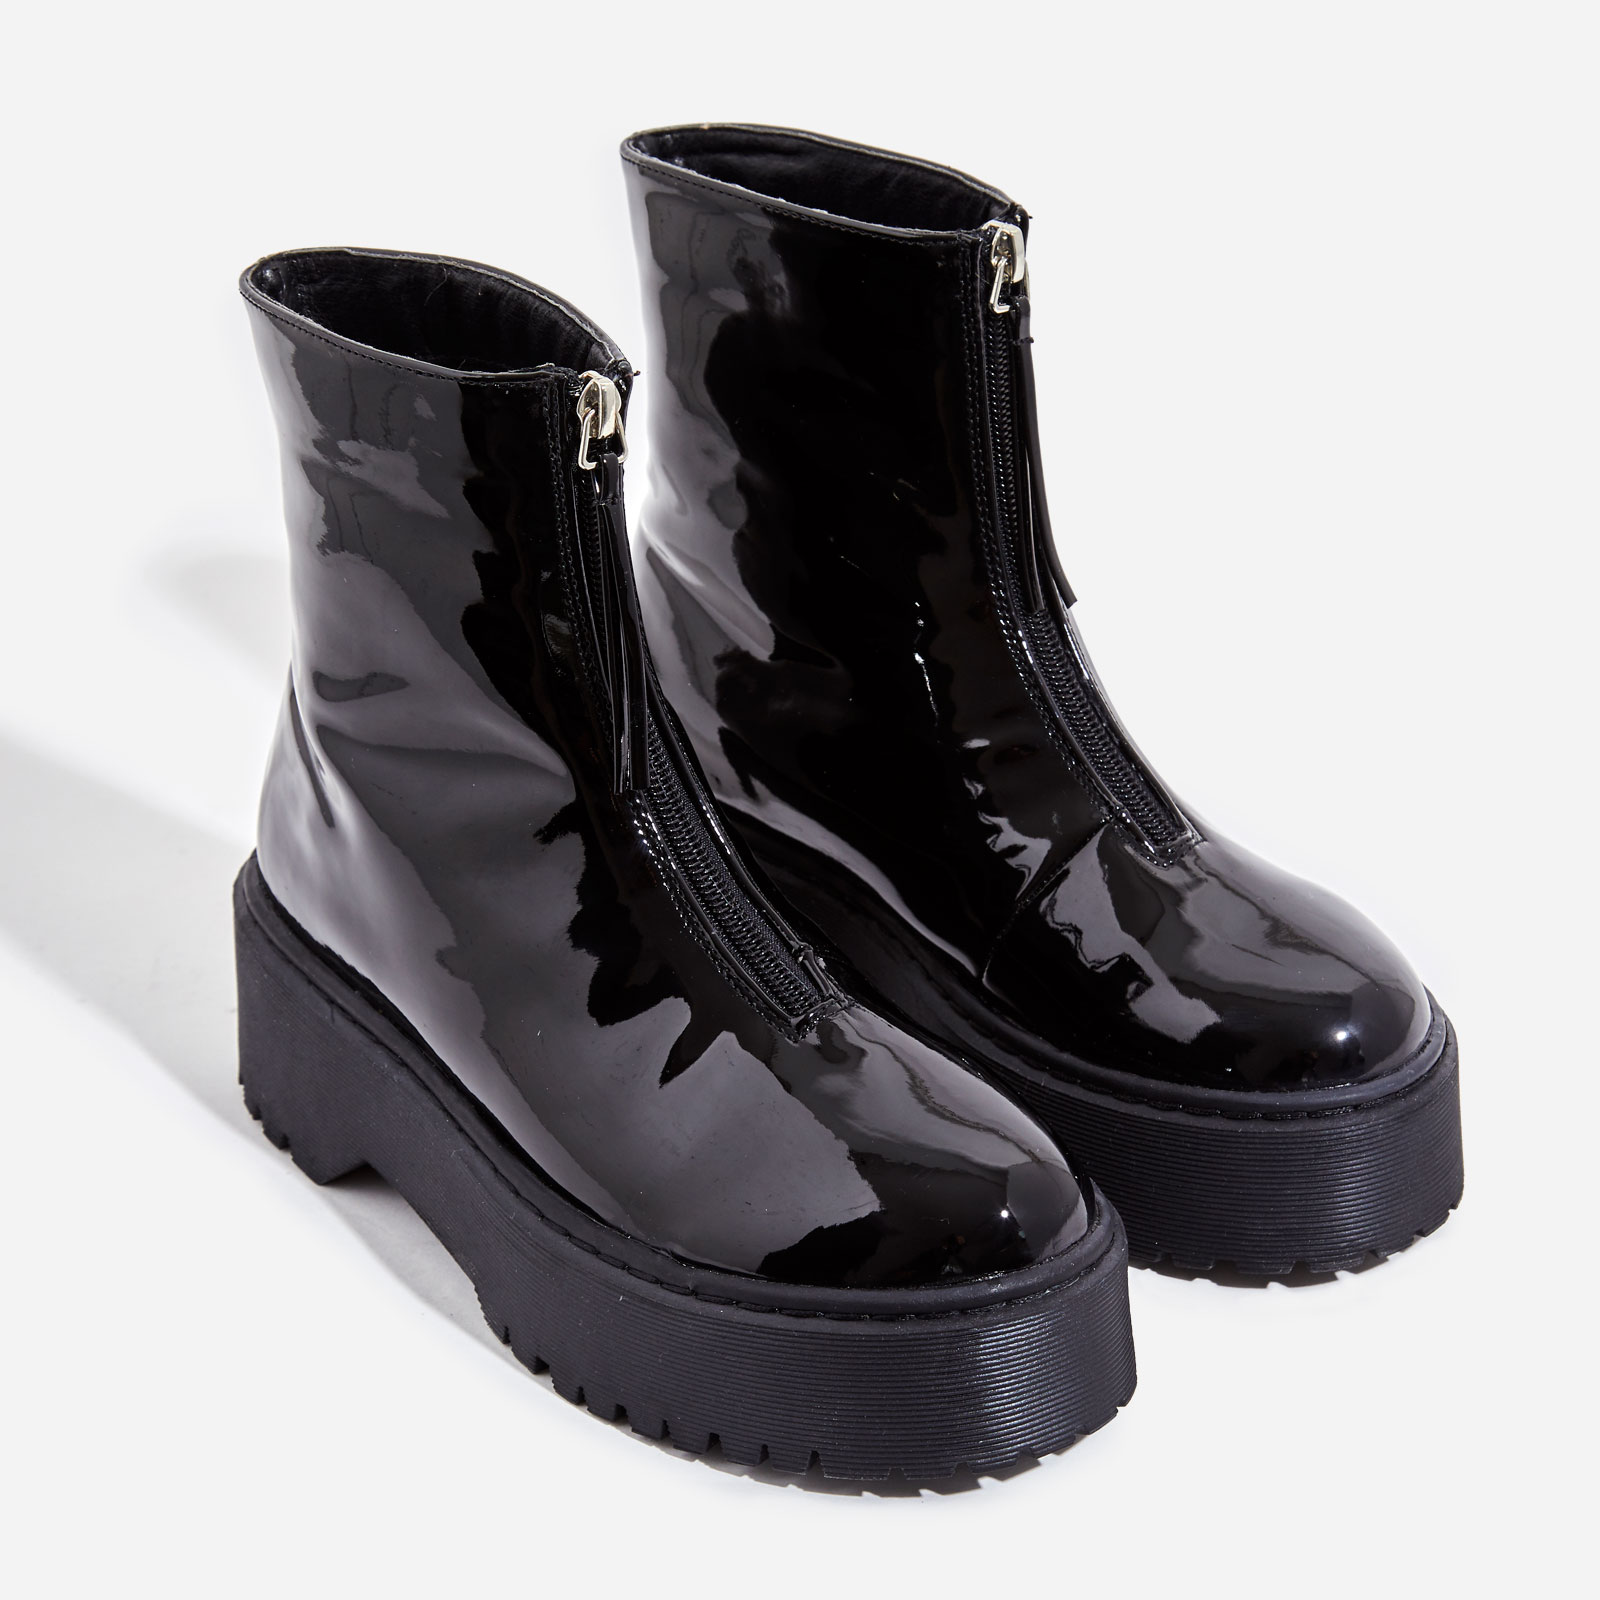 Centre Zip Detail Ankle Biker Boots In Black Patent